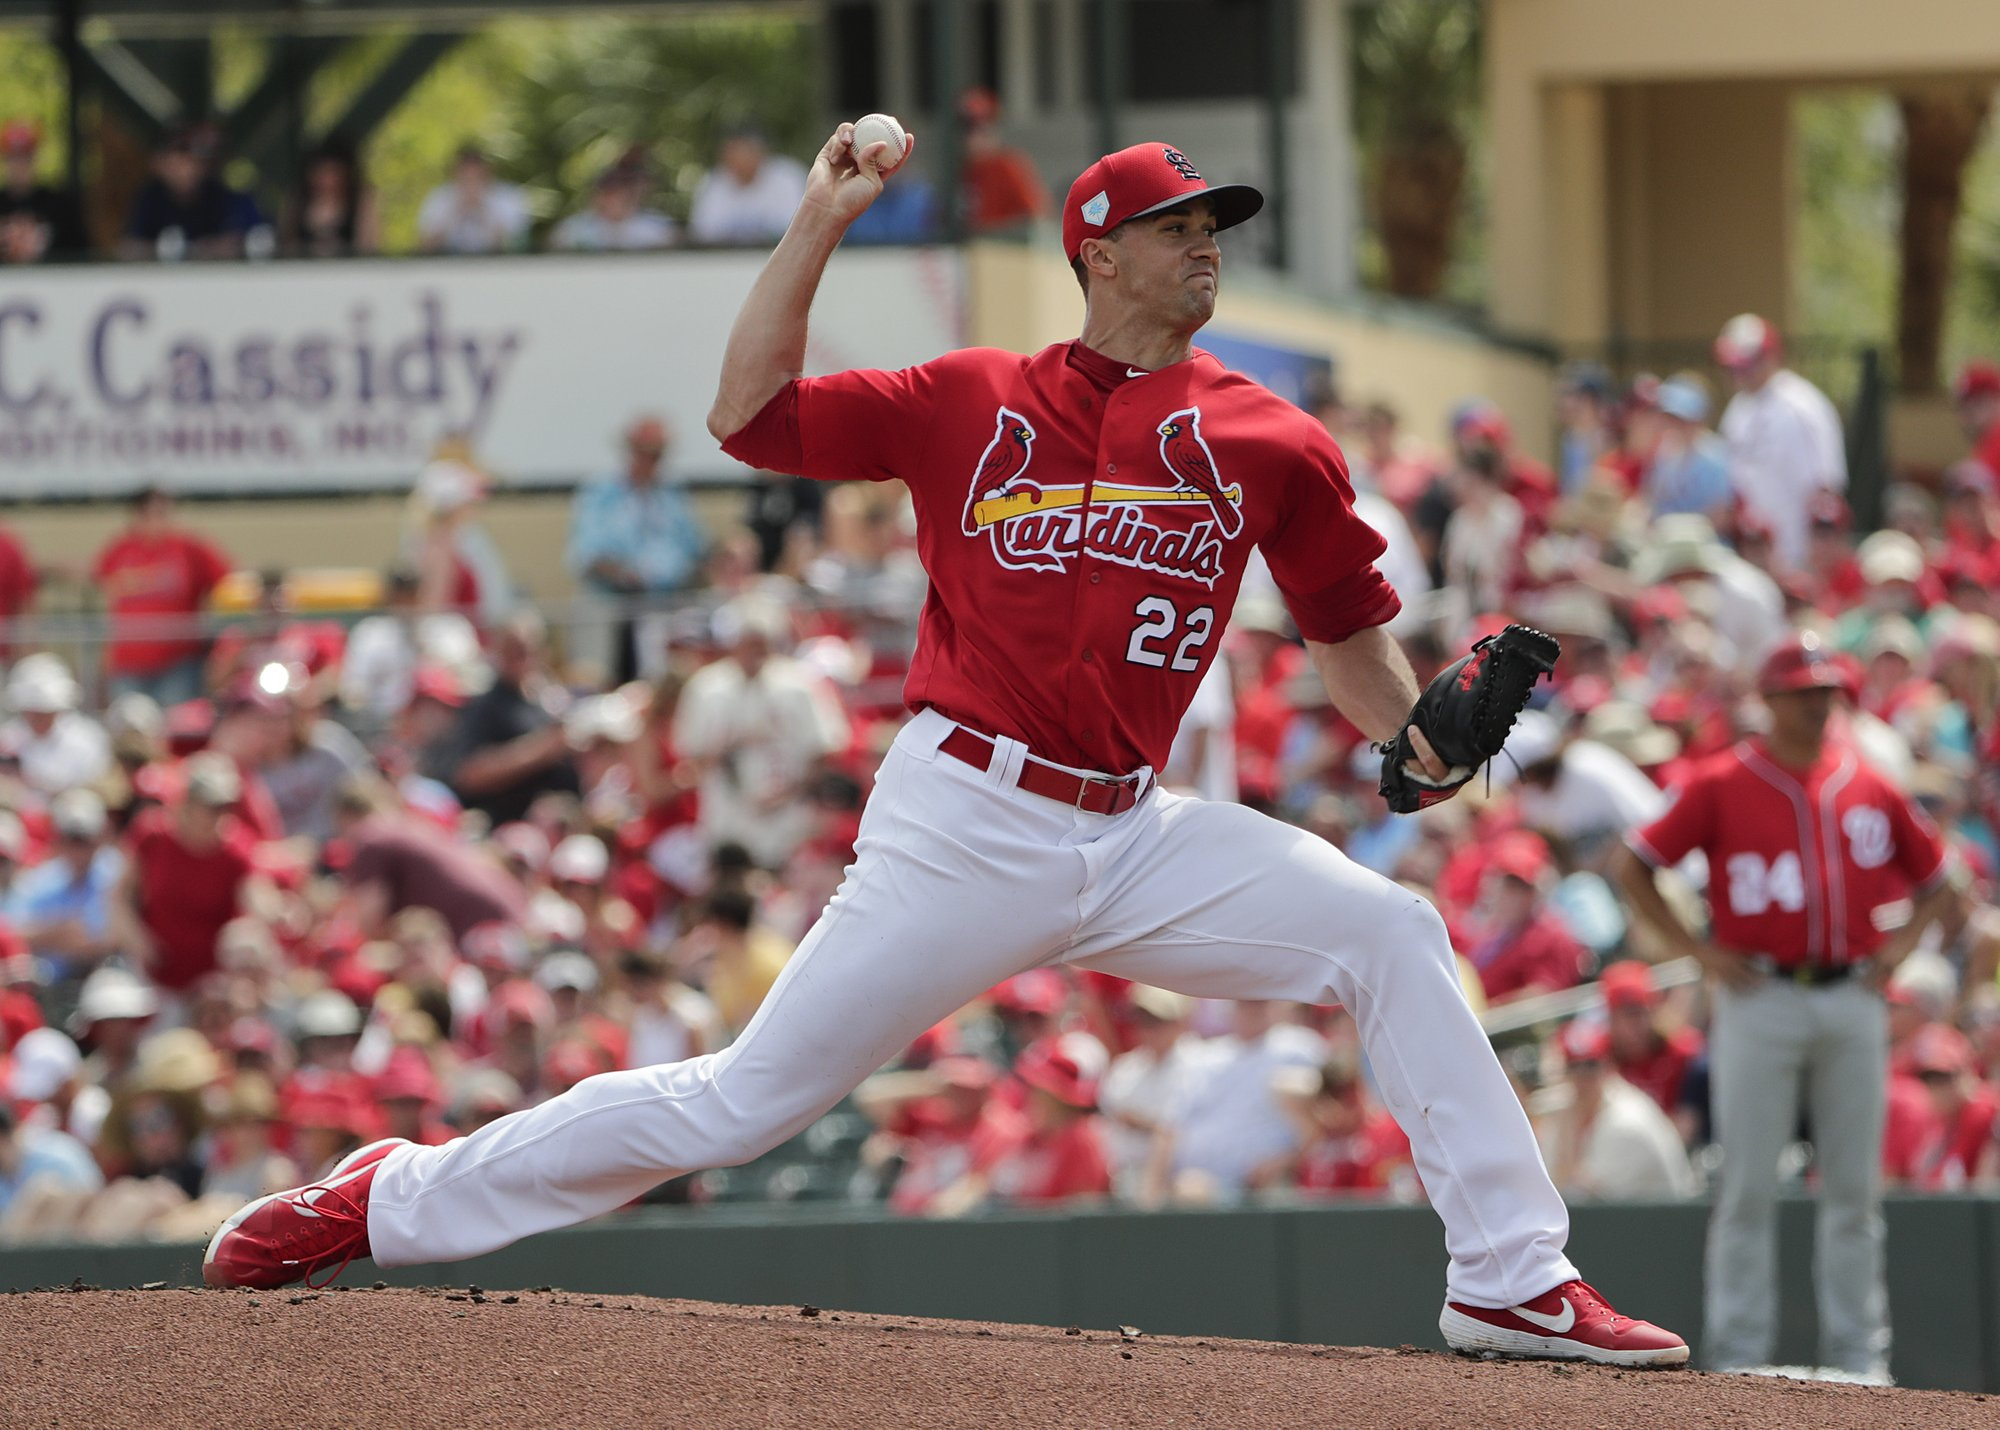 Fresh and ready, Cards' Flaherty builds off rookie season